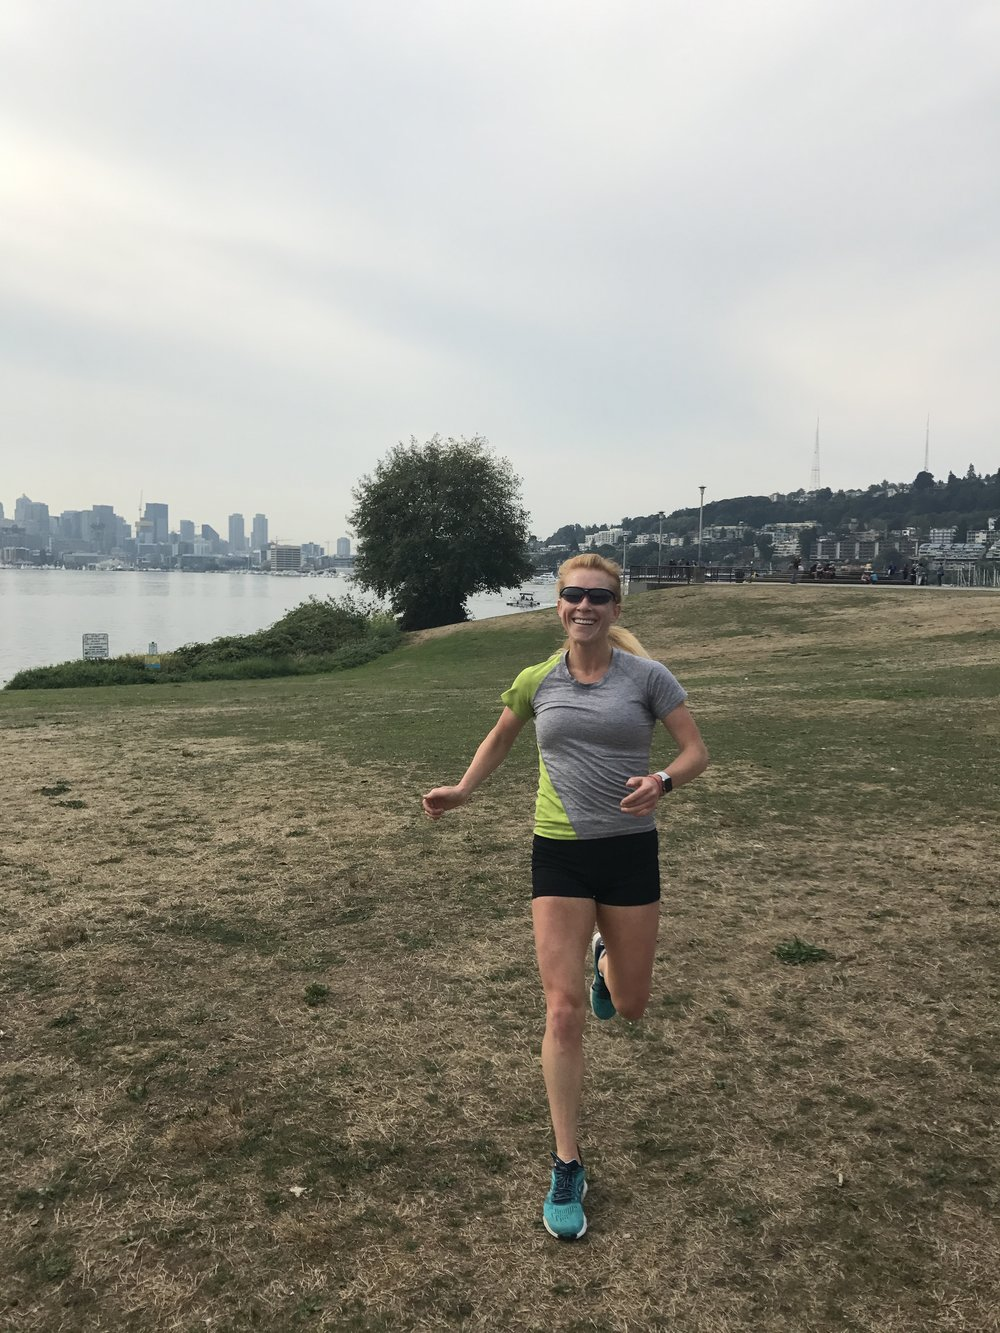 Seattle is one of my favorite cities to run in!